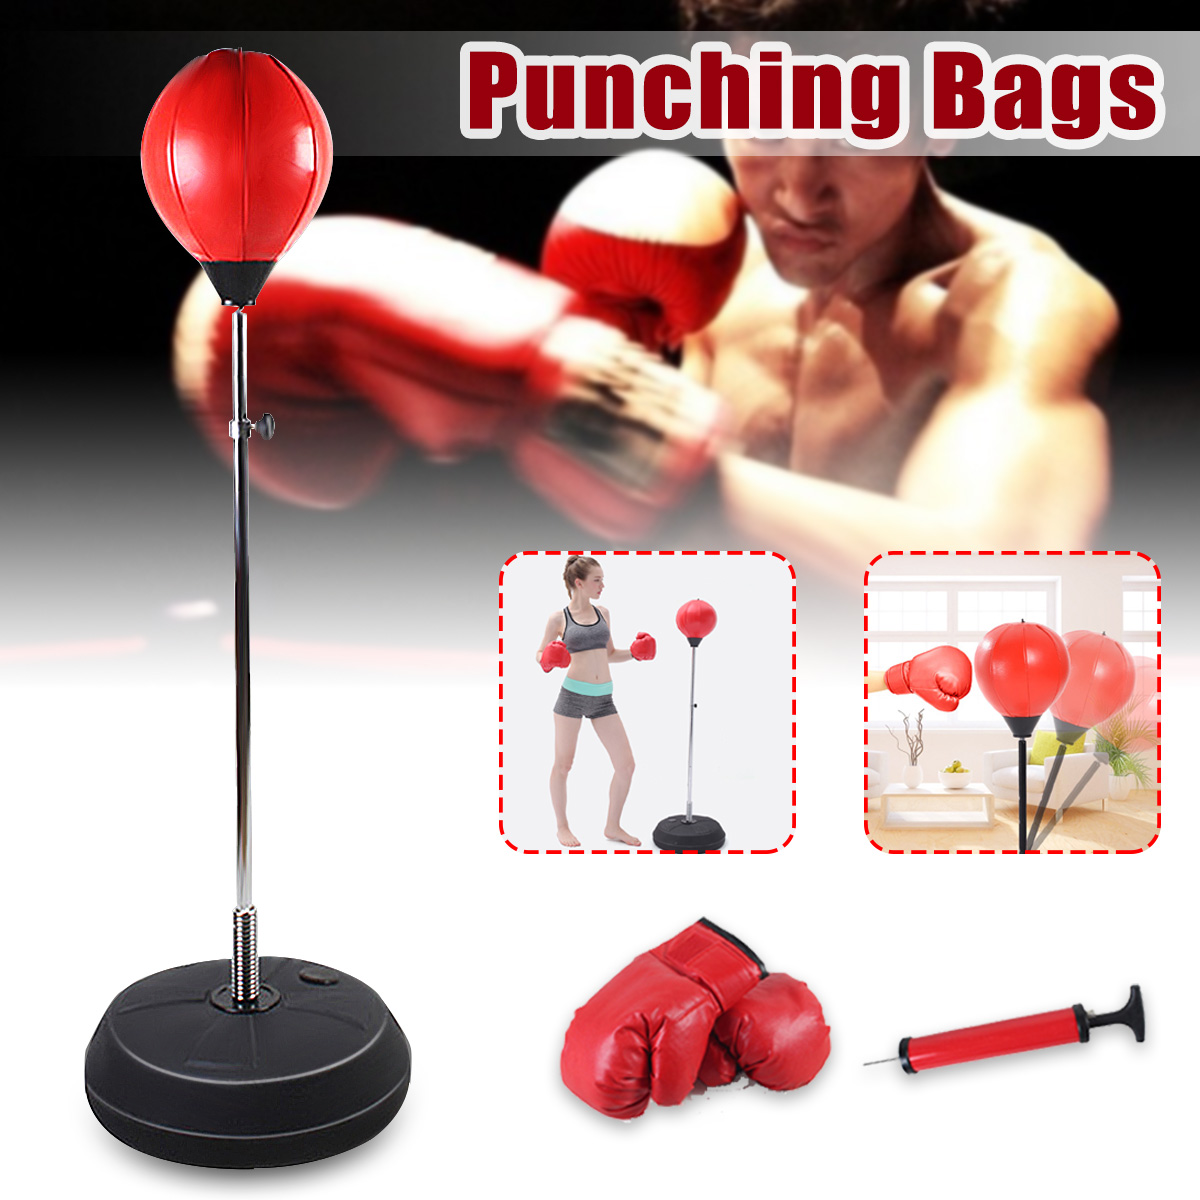 Boxing Punch Bag, Freestanding Punching Bags Speed Ball Punch Bag Set with Back Base, Gloves and Pump for Adults, Adjustable Height 120cm-150cm